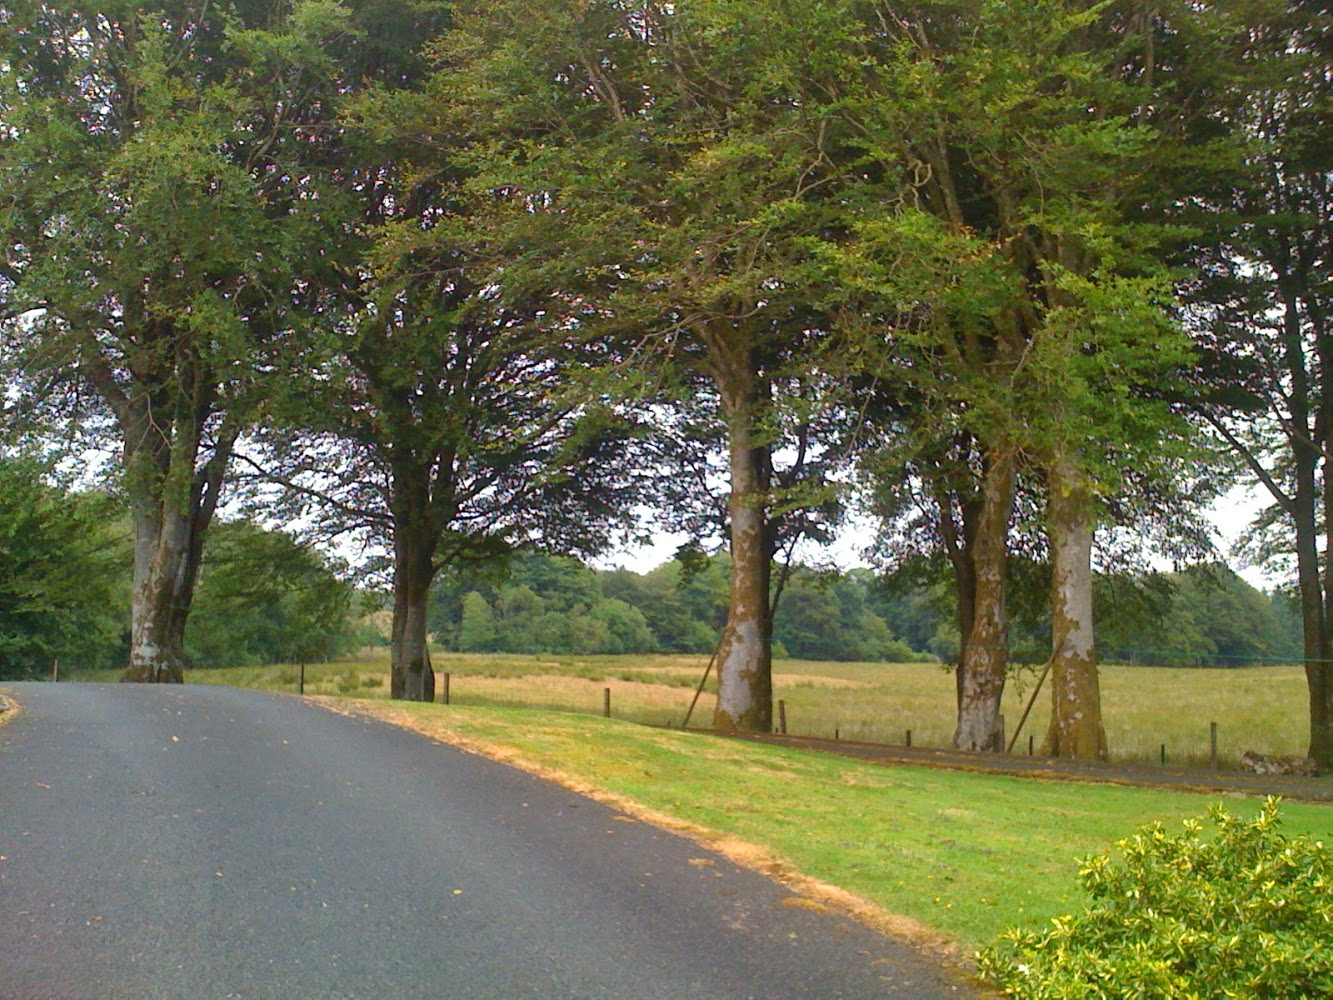 An image of mature beech (Fagus sylvatica) trees